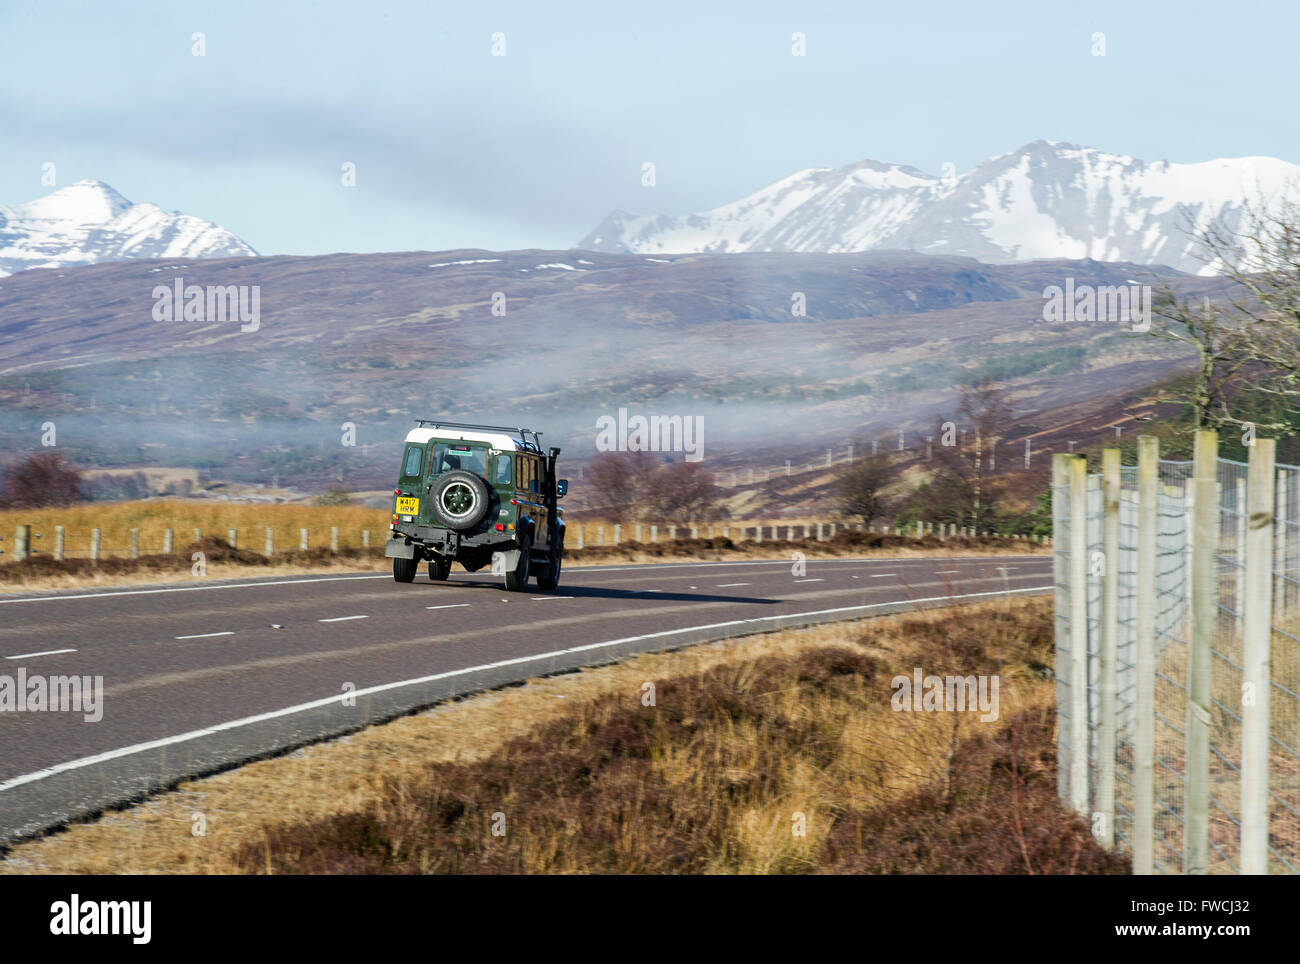 Land Rover 4x4 car alone on a remote Scottish Highland road, part of the North Coast 500 route - Stock Image